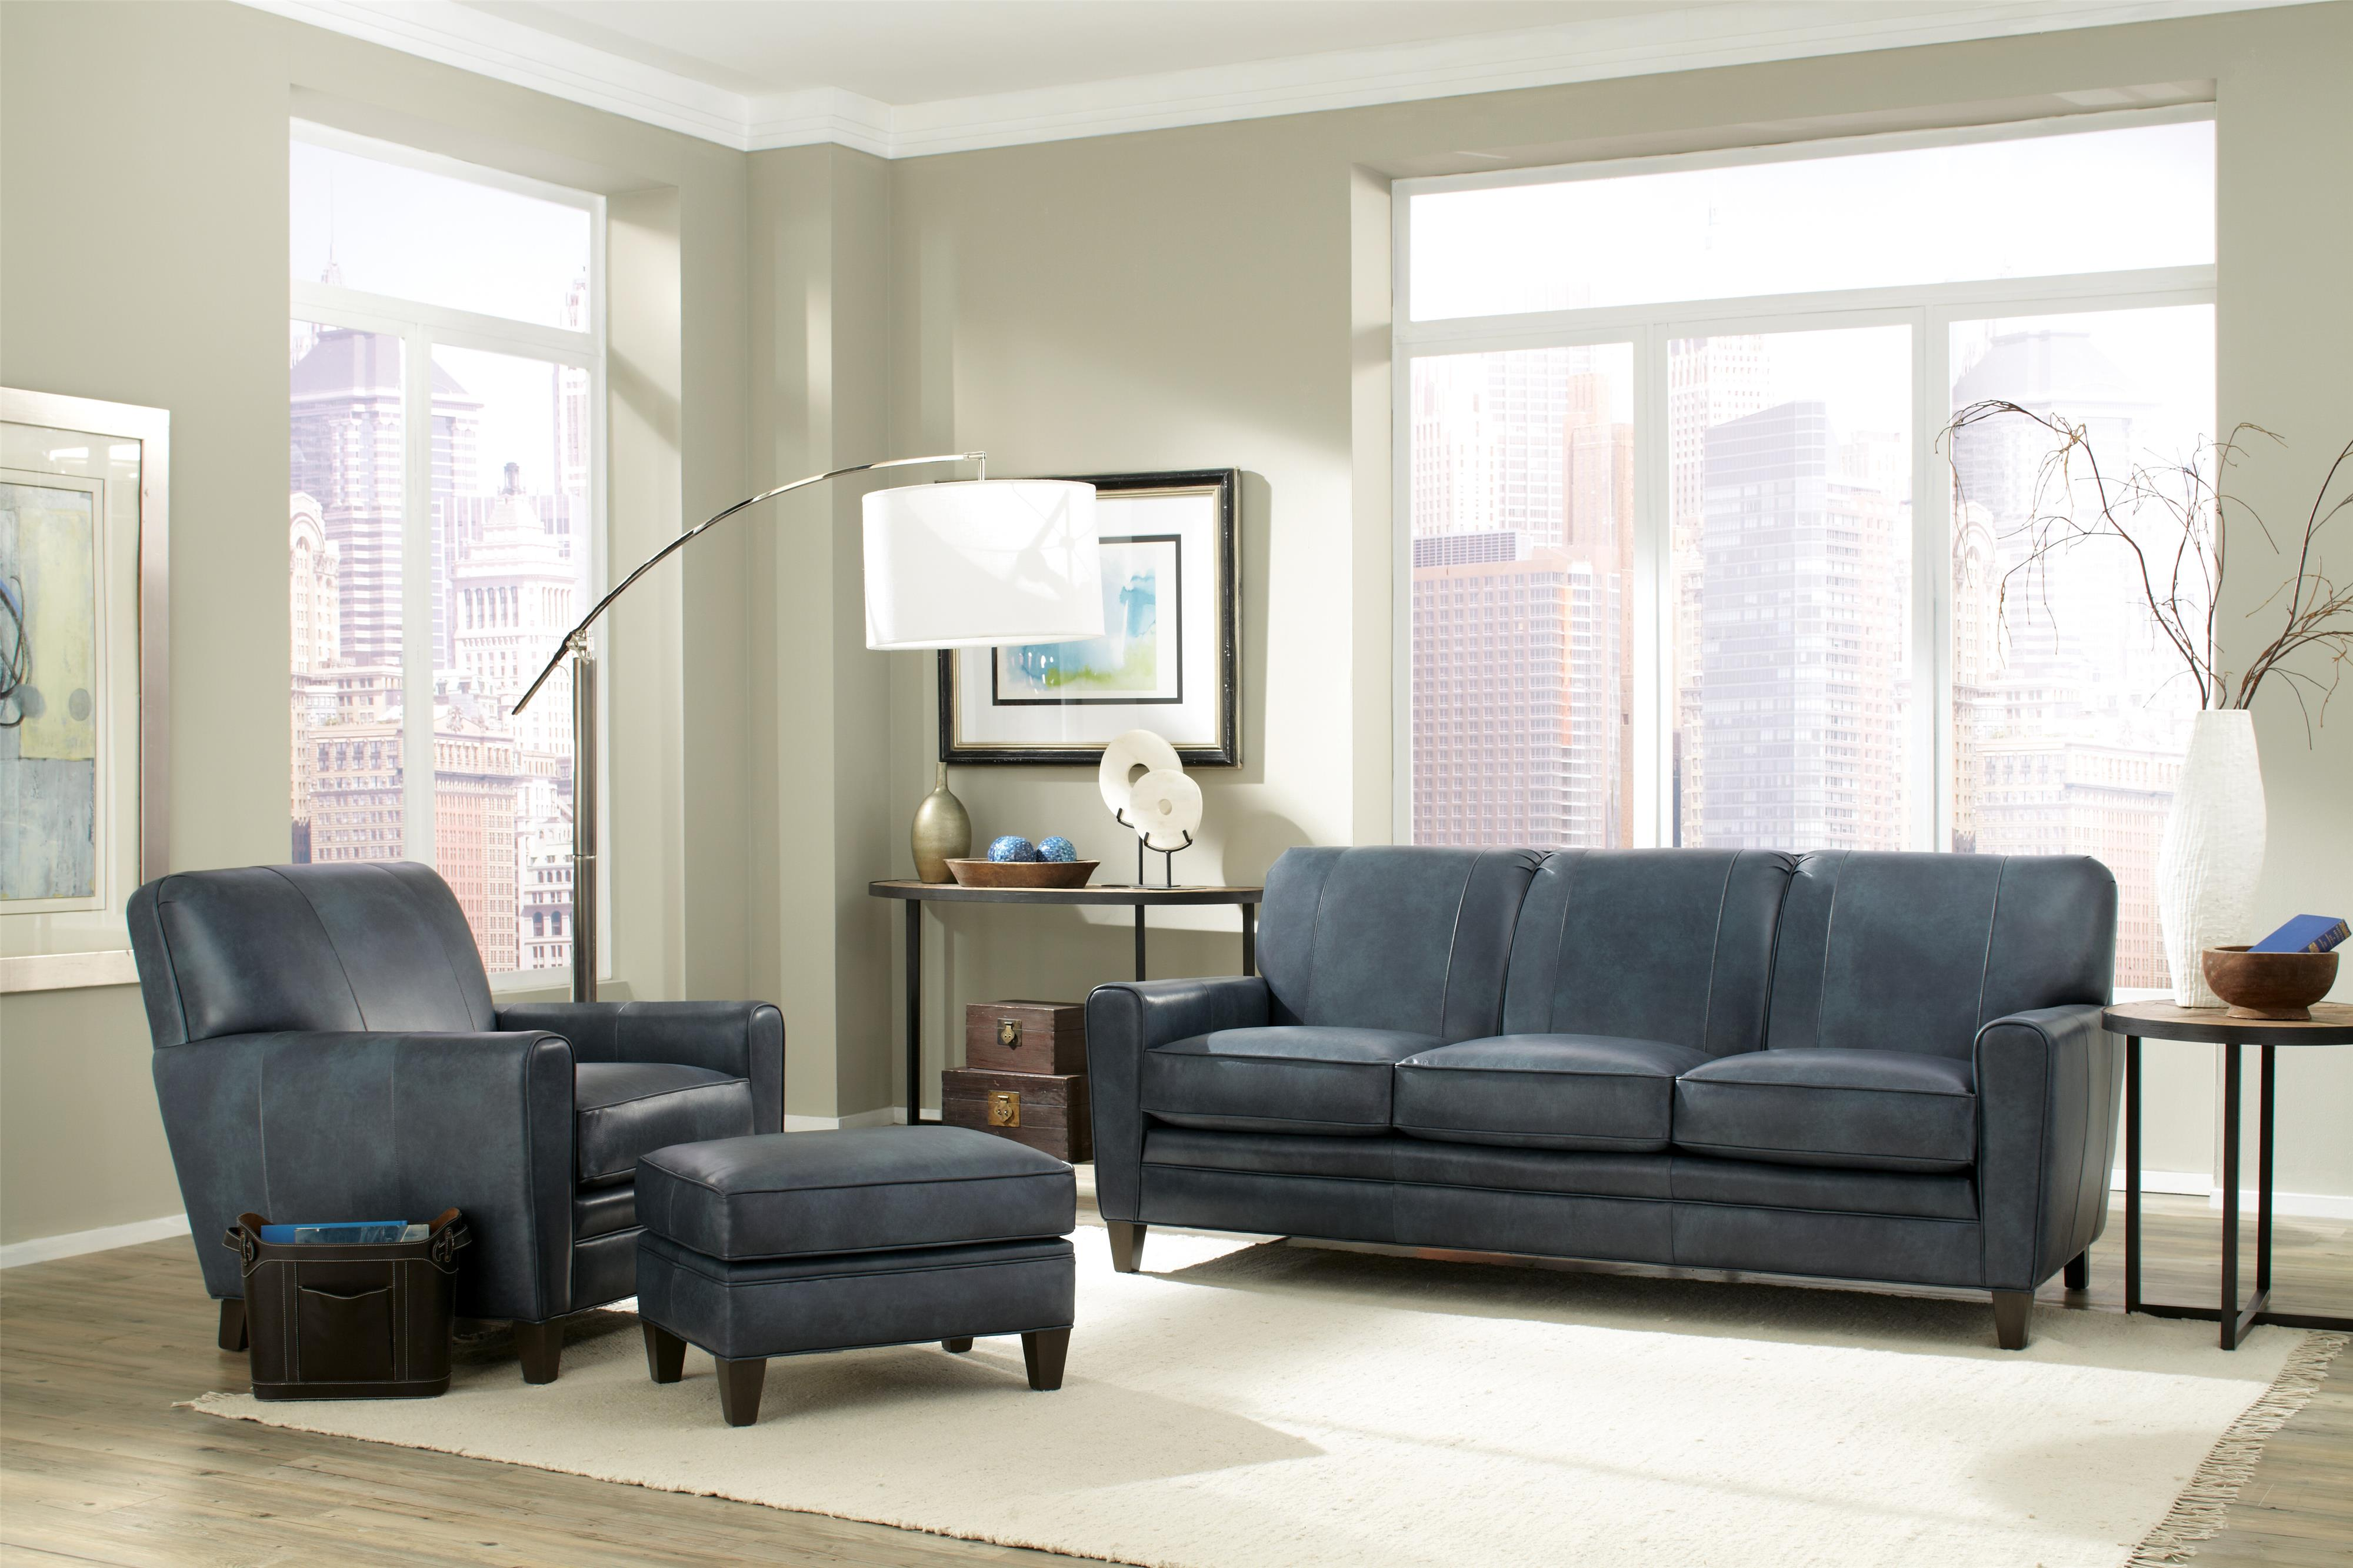 225 Stationary Living Room Group by Smith Brothers at Rooms for Less